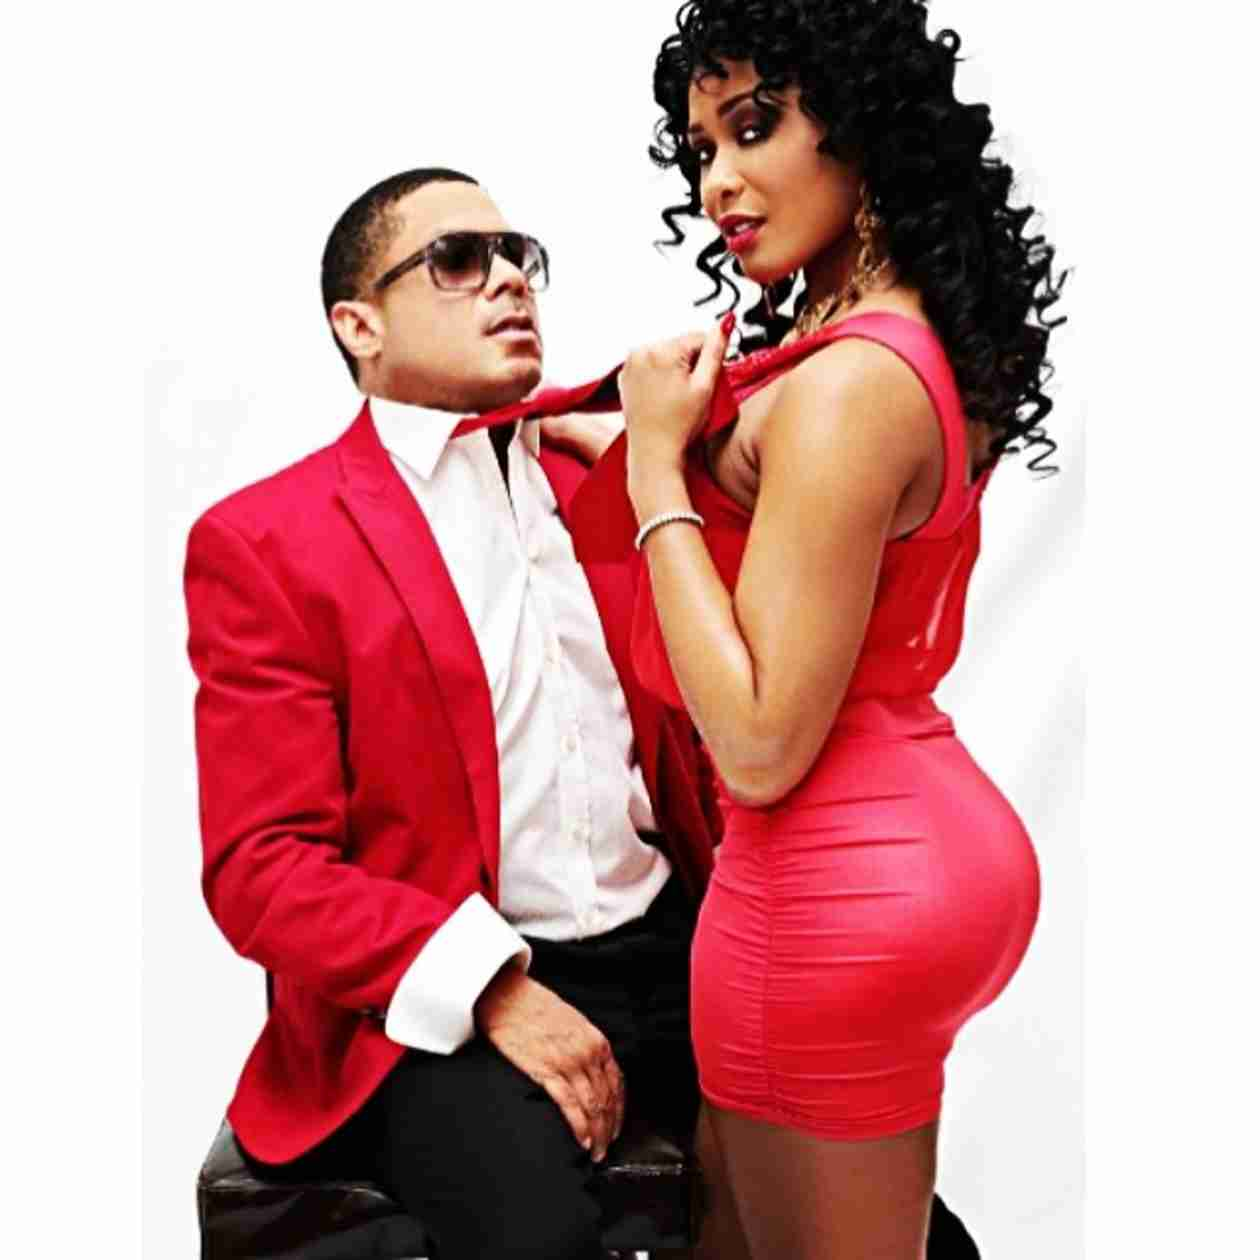 See Benzino and Fiancé Thi Thi's Romantic Photoshoot For Valentine's Day! (PHOTOS)